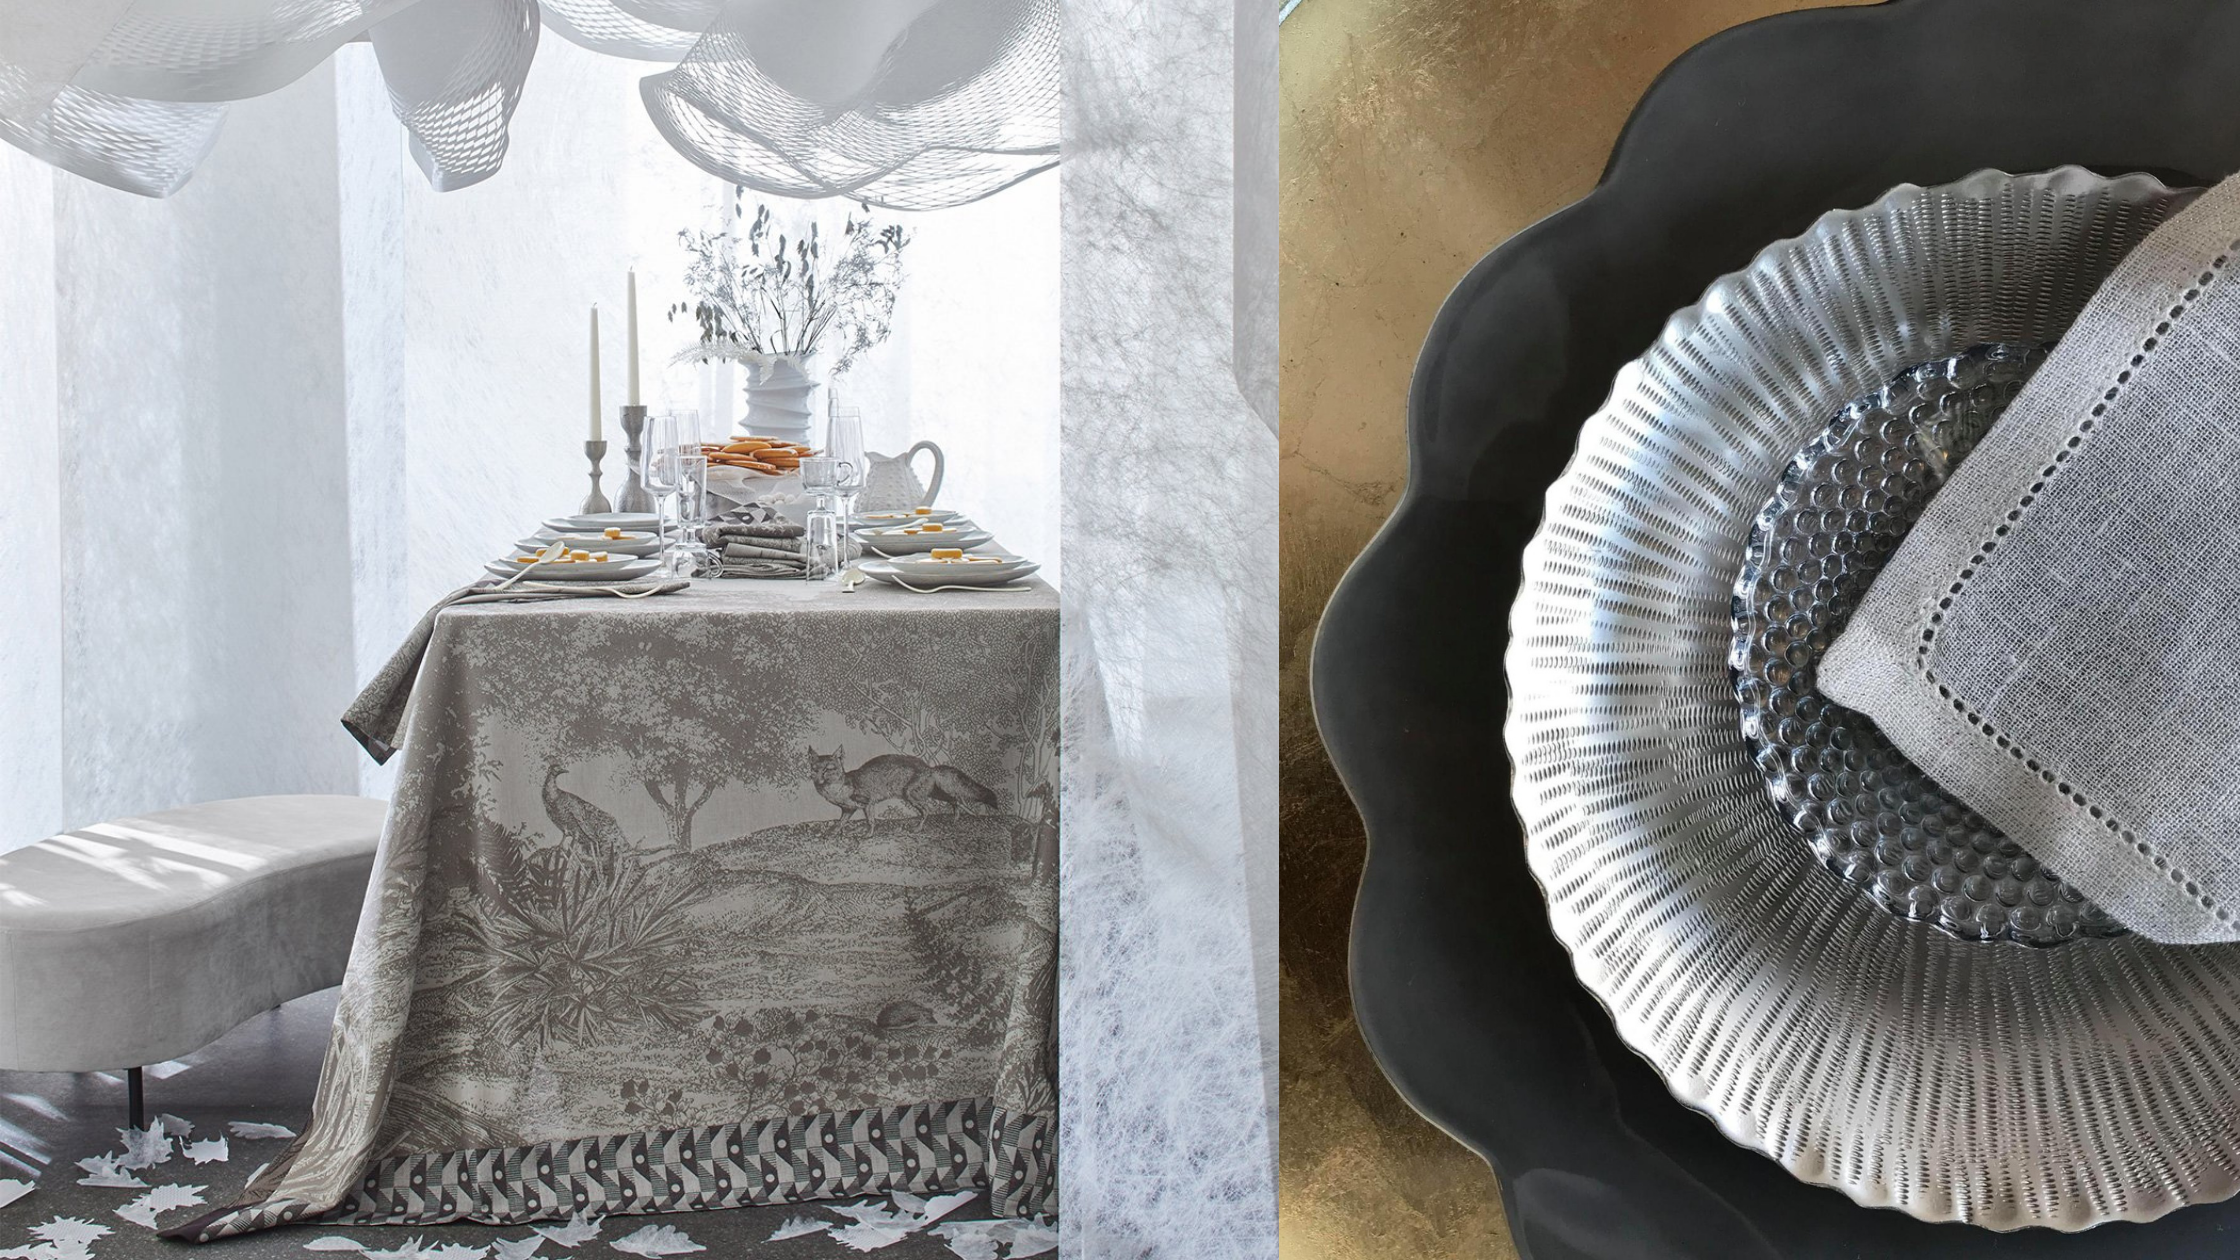 Le Jacquard Francais Foret Enchantee tablecloth and tablesetting